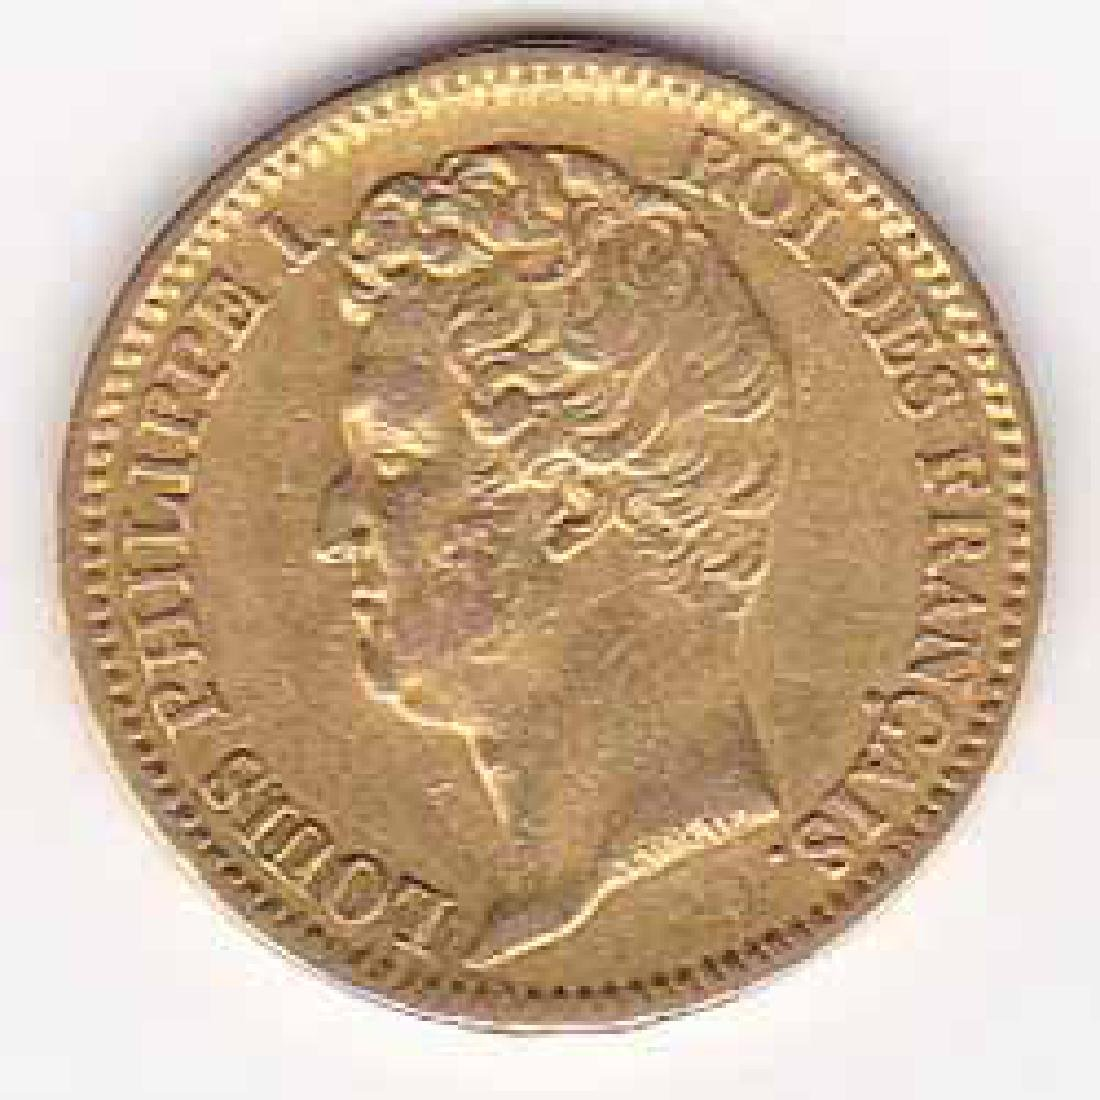 France 20 francs gold 1830-31 Philippe I